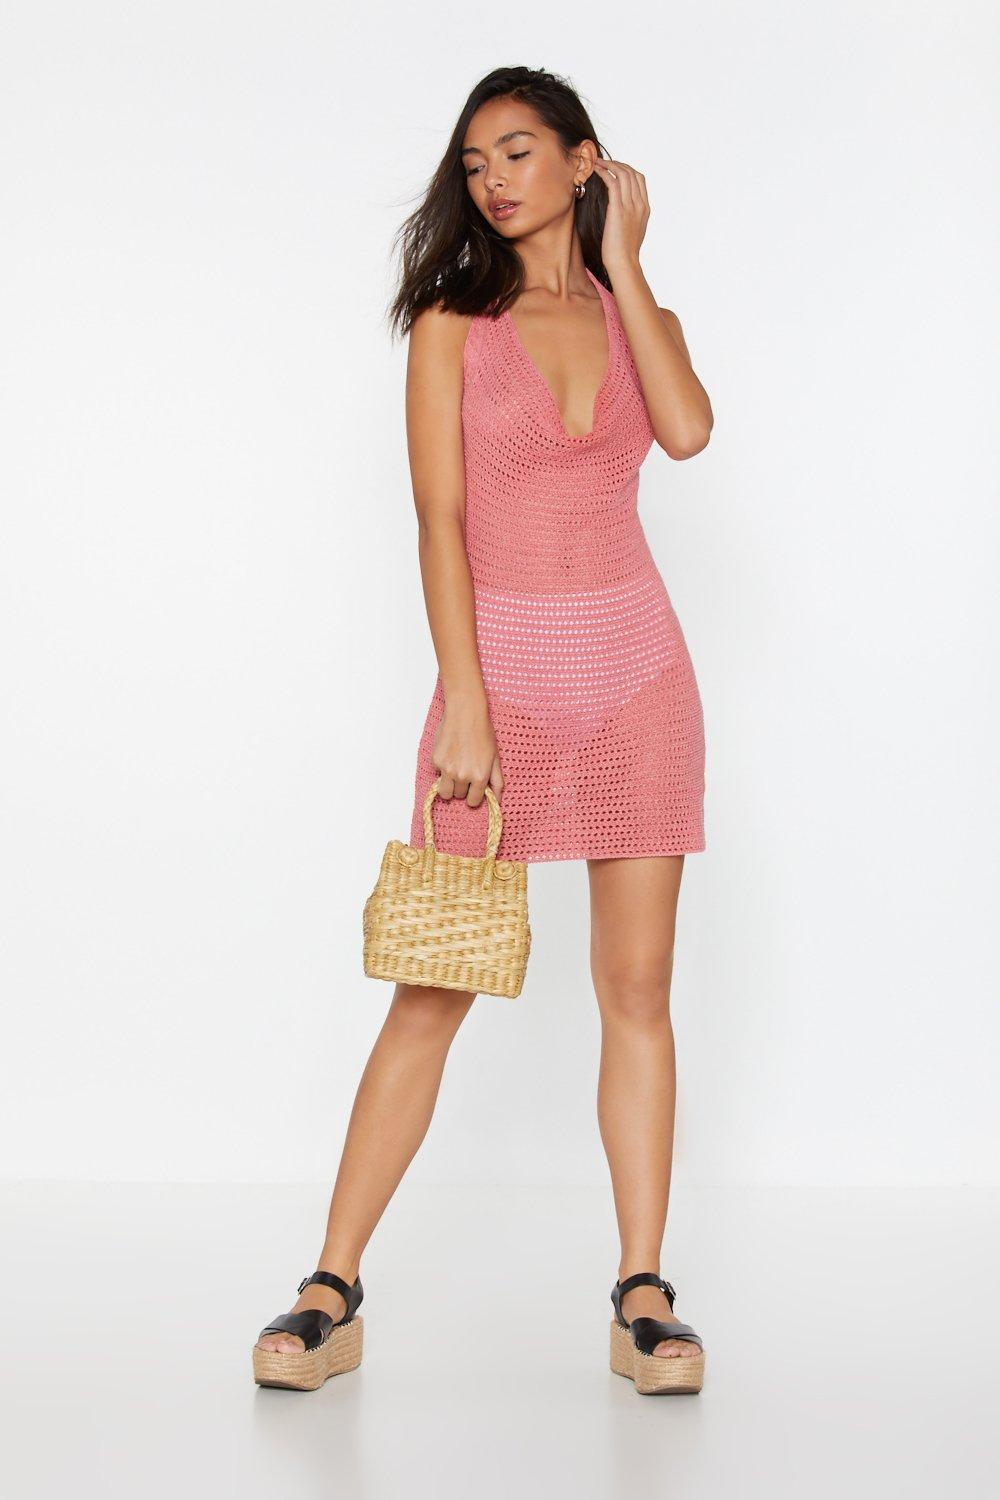 71f9e9ab6c Womens Coral Pointelle Crochet Halterneck Dress. Hover to zoom